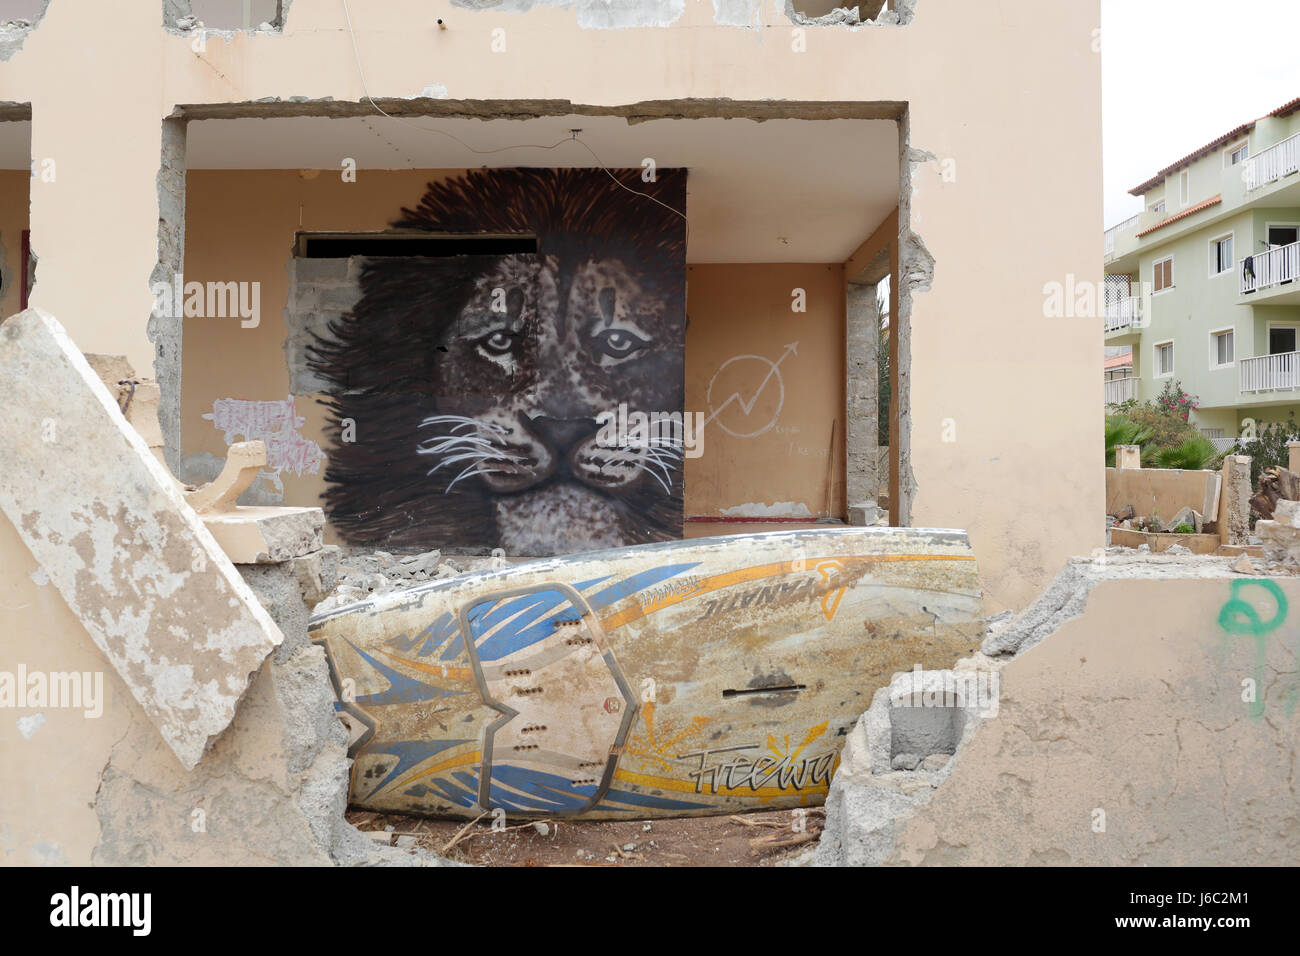 Lion image on an abandon building by a local Street Artist - Stock Image